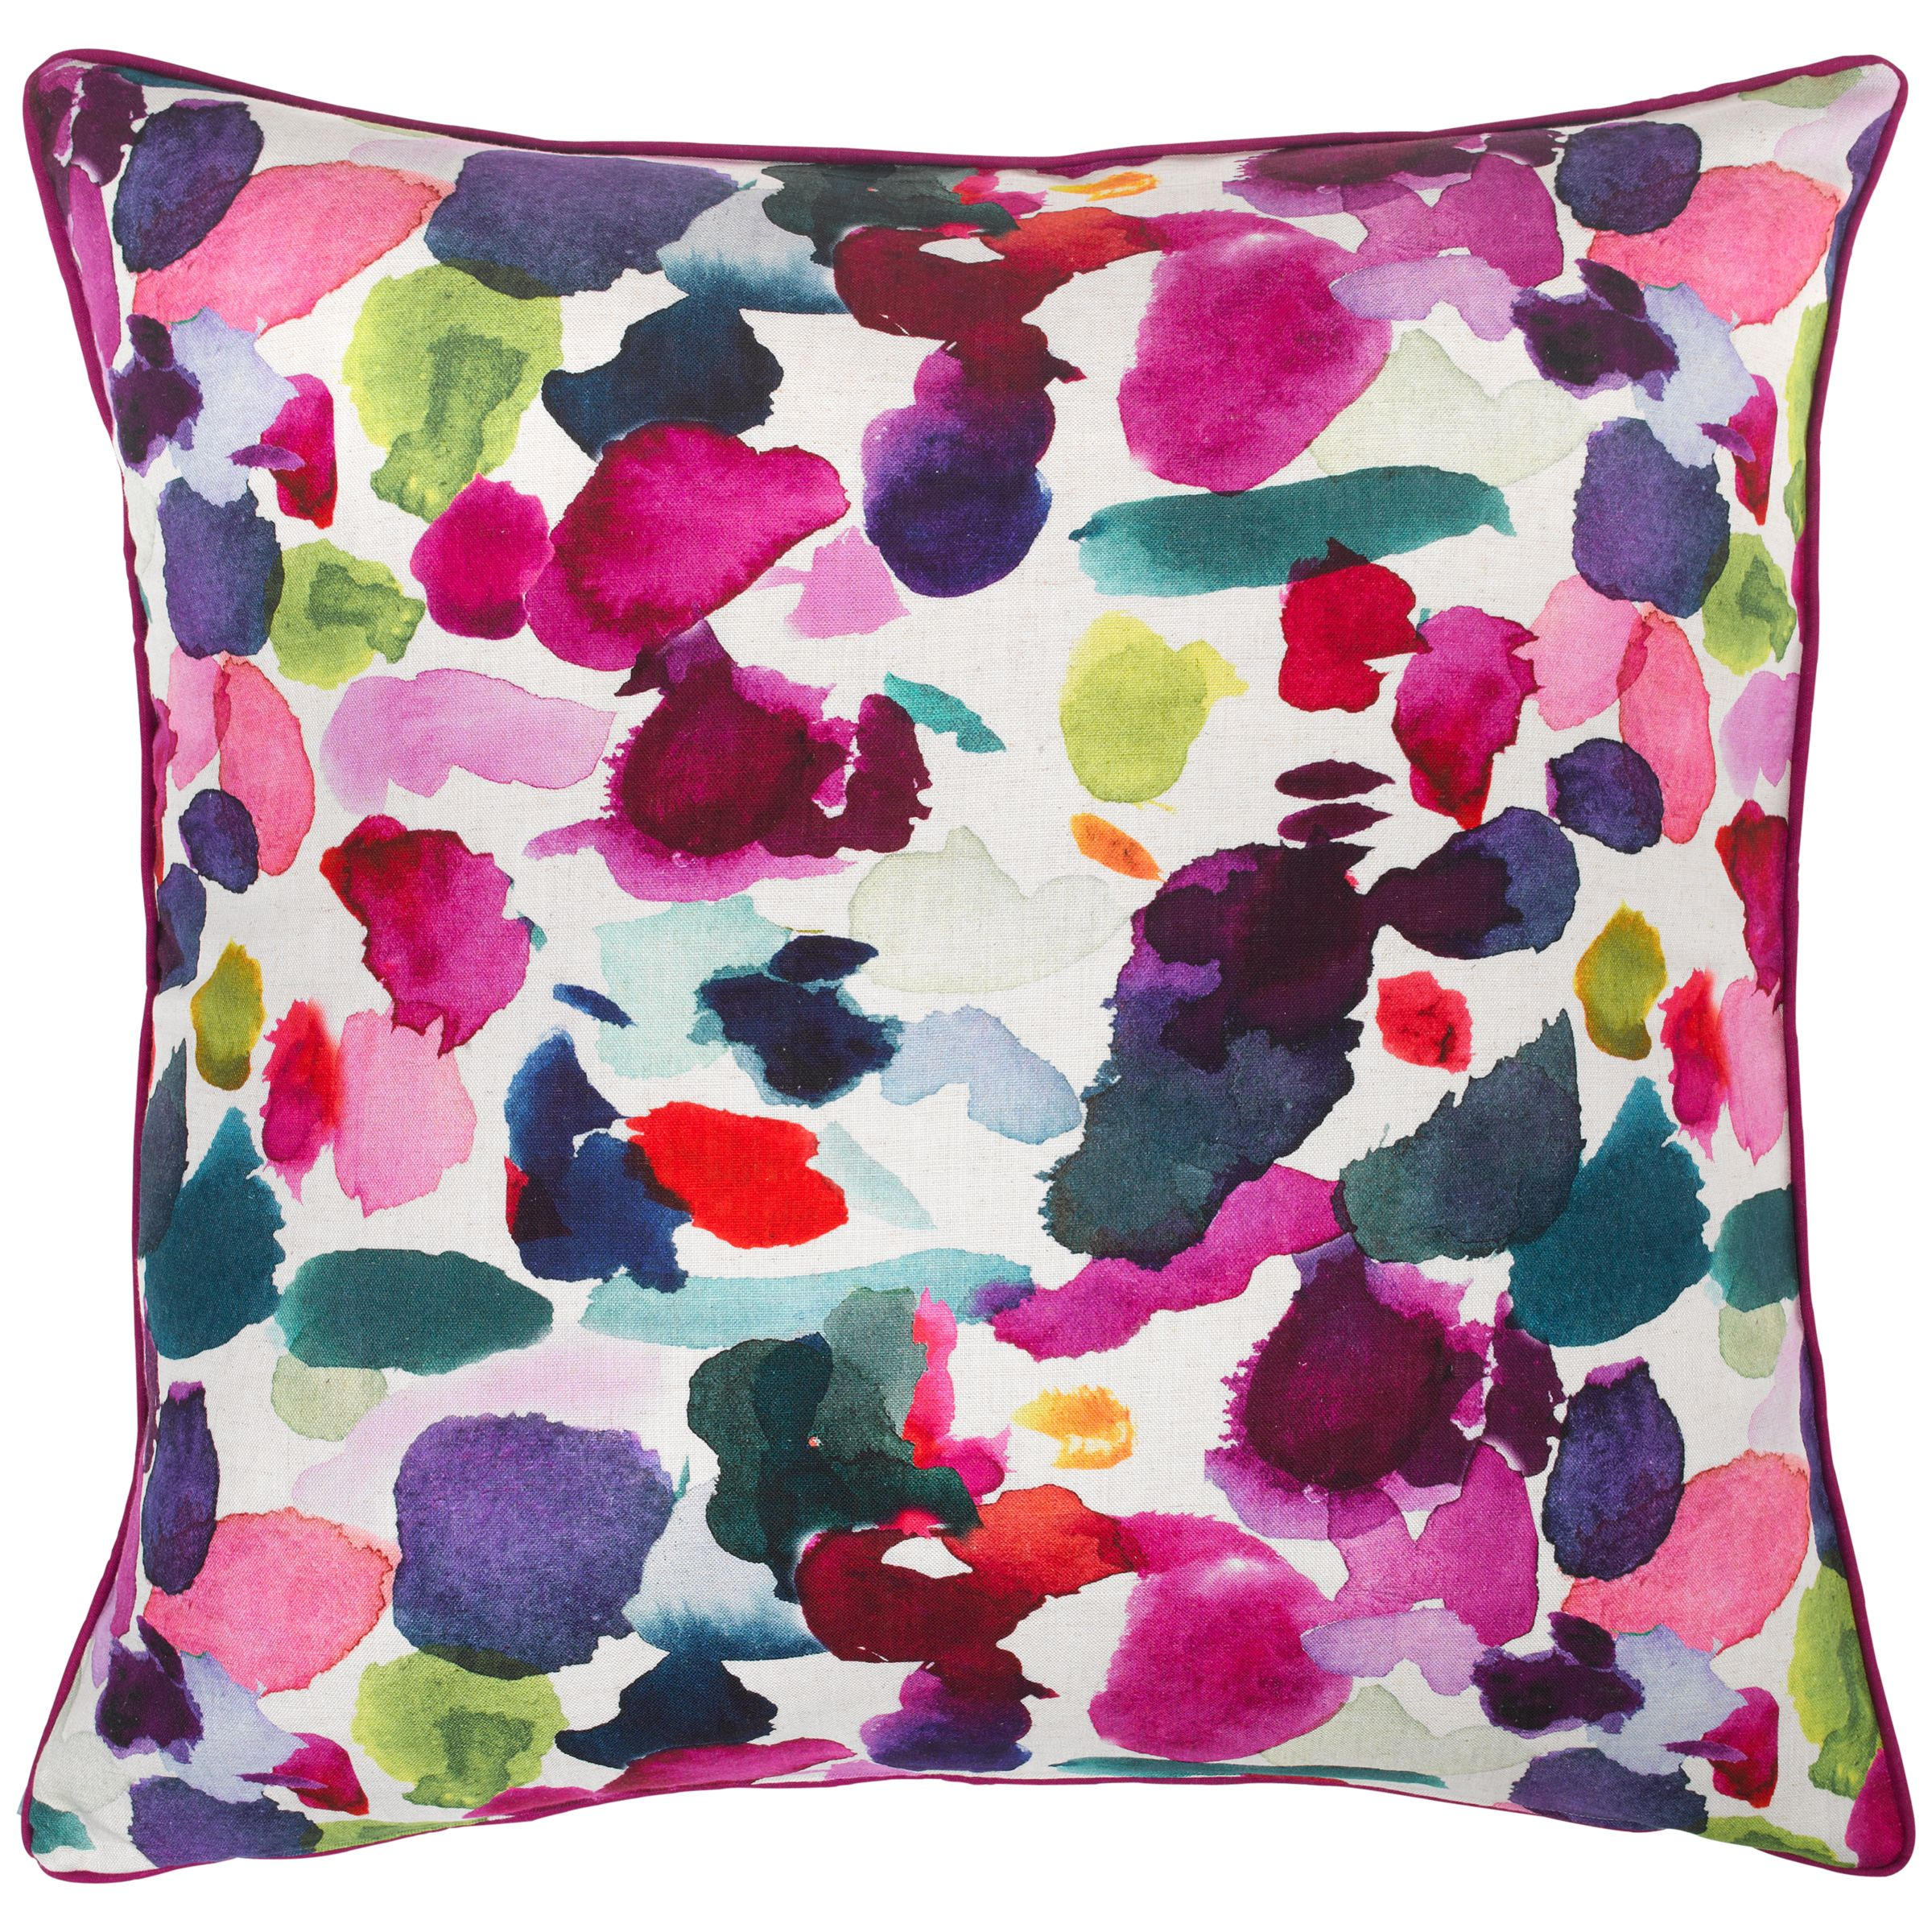 bluebellgray bluebellgray Abstract Floor Cushion, Multi